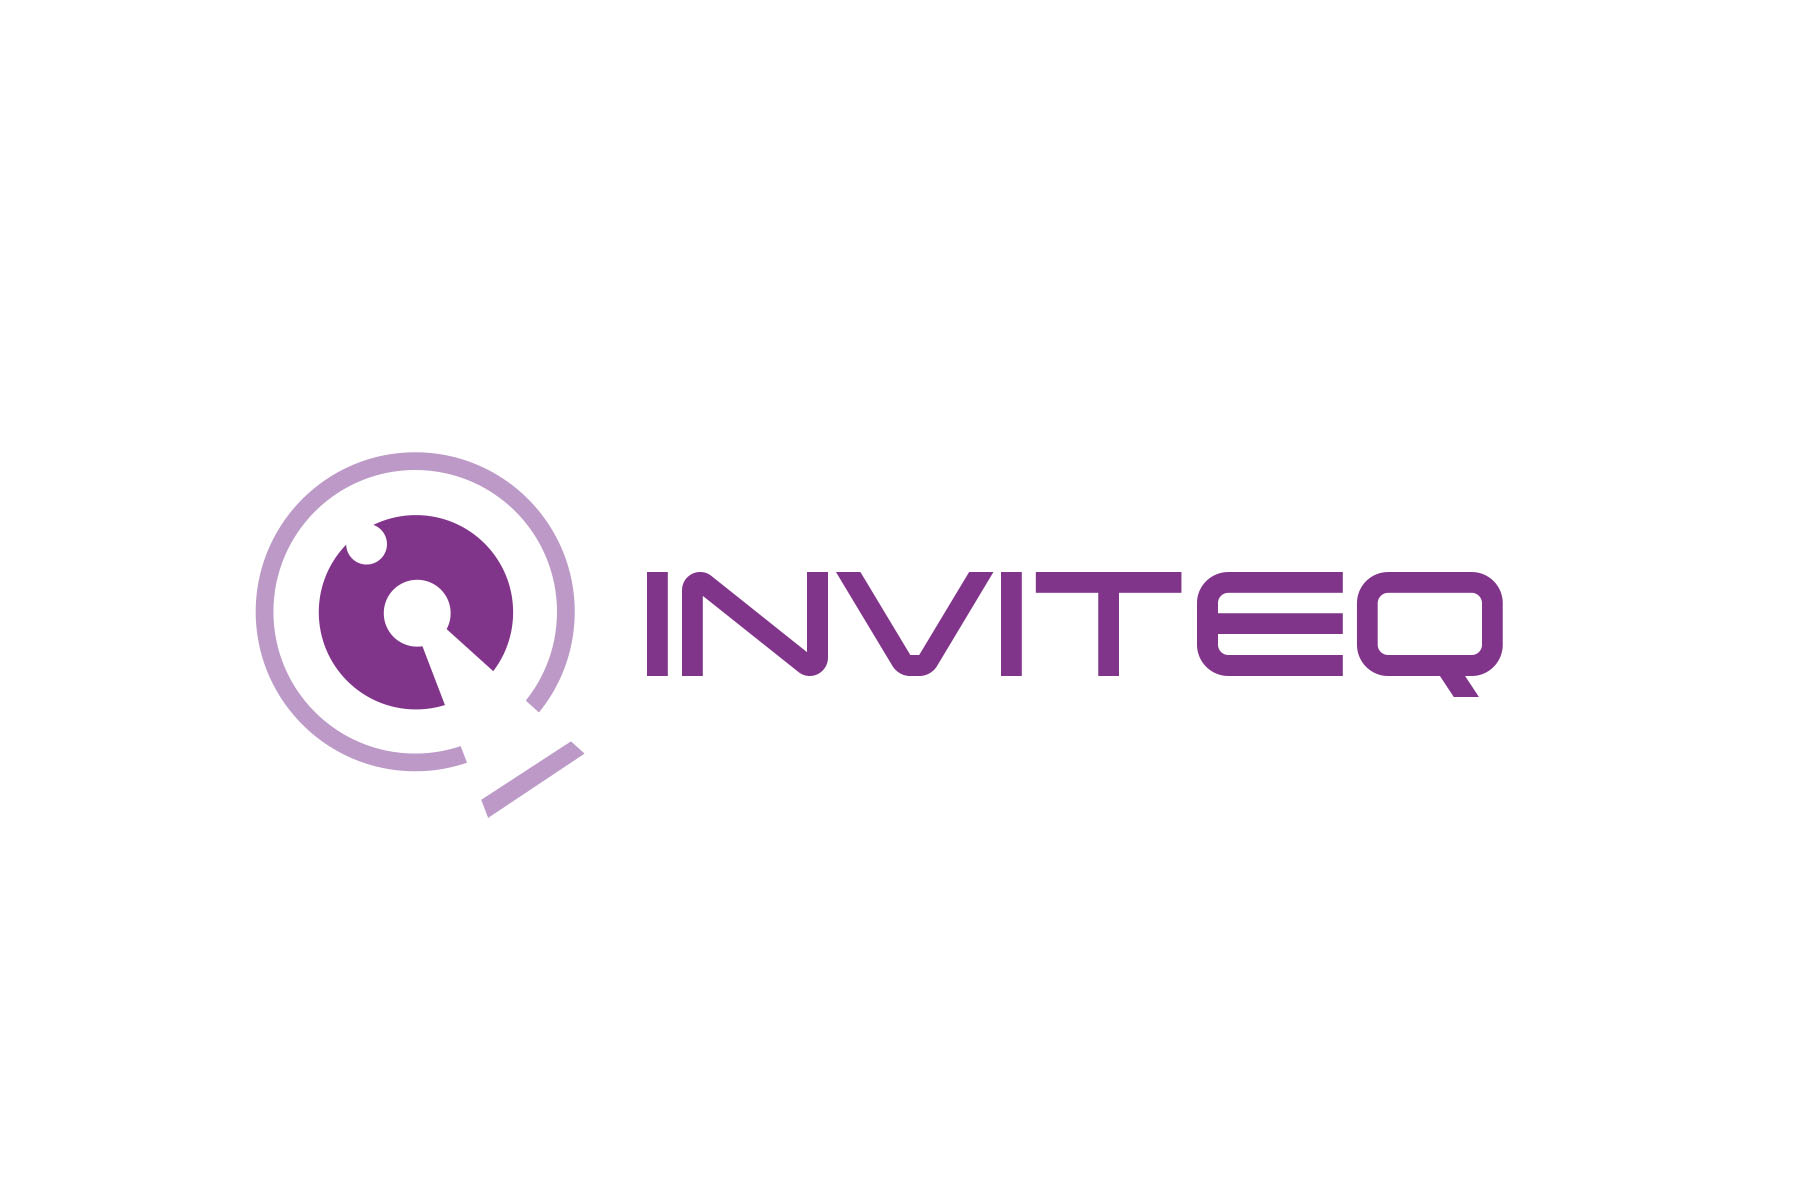 Inviteq Logo Design and Development